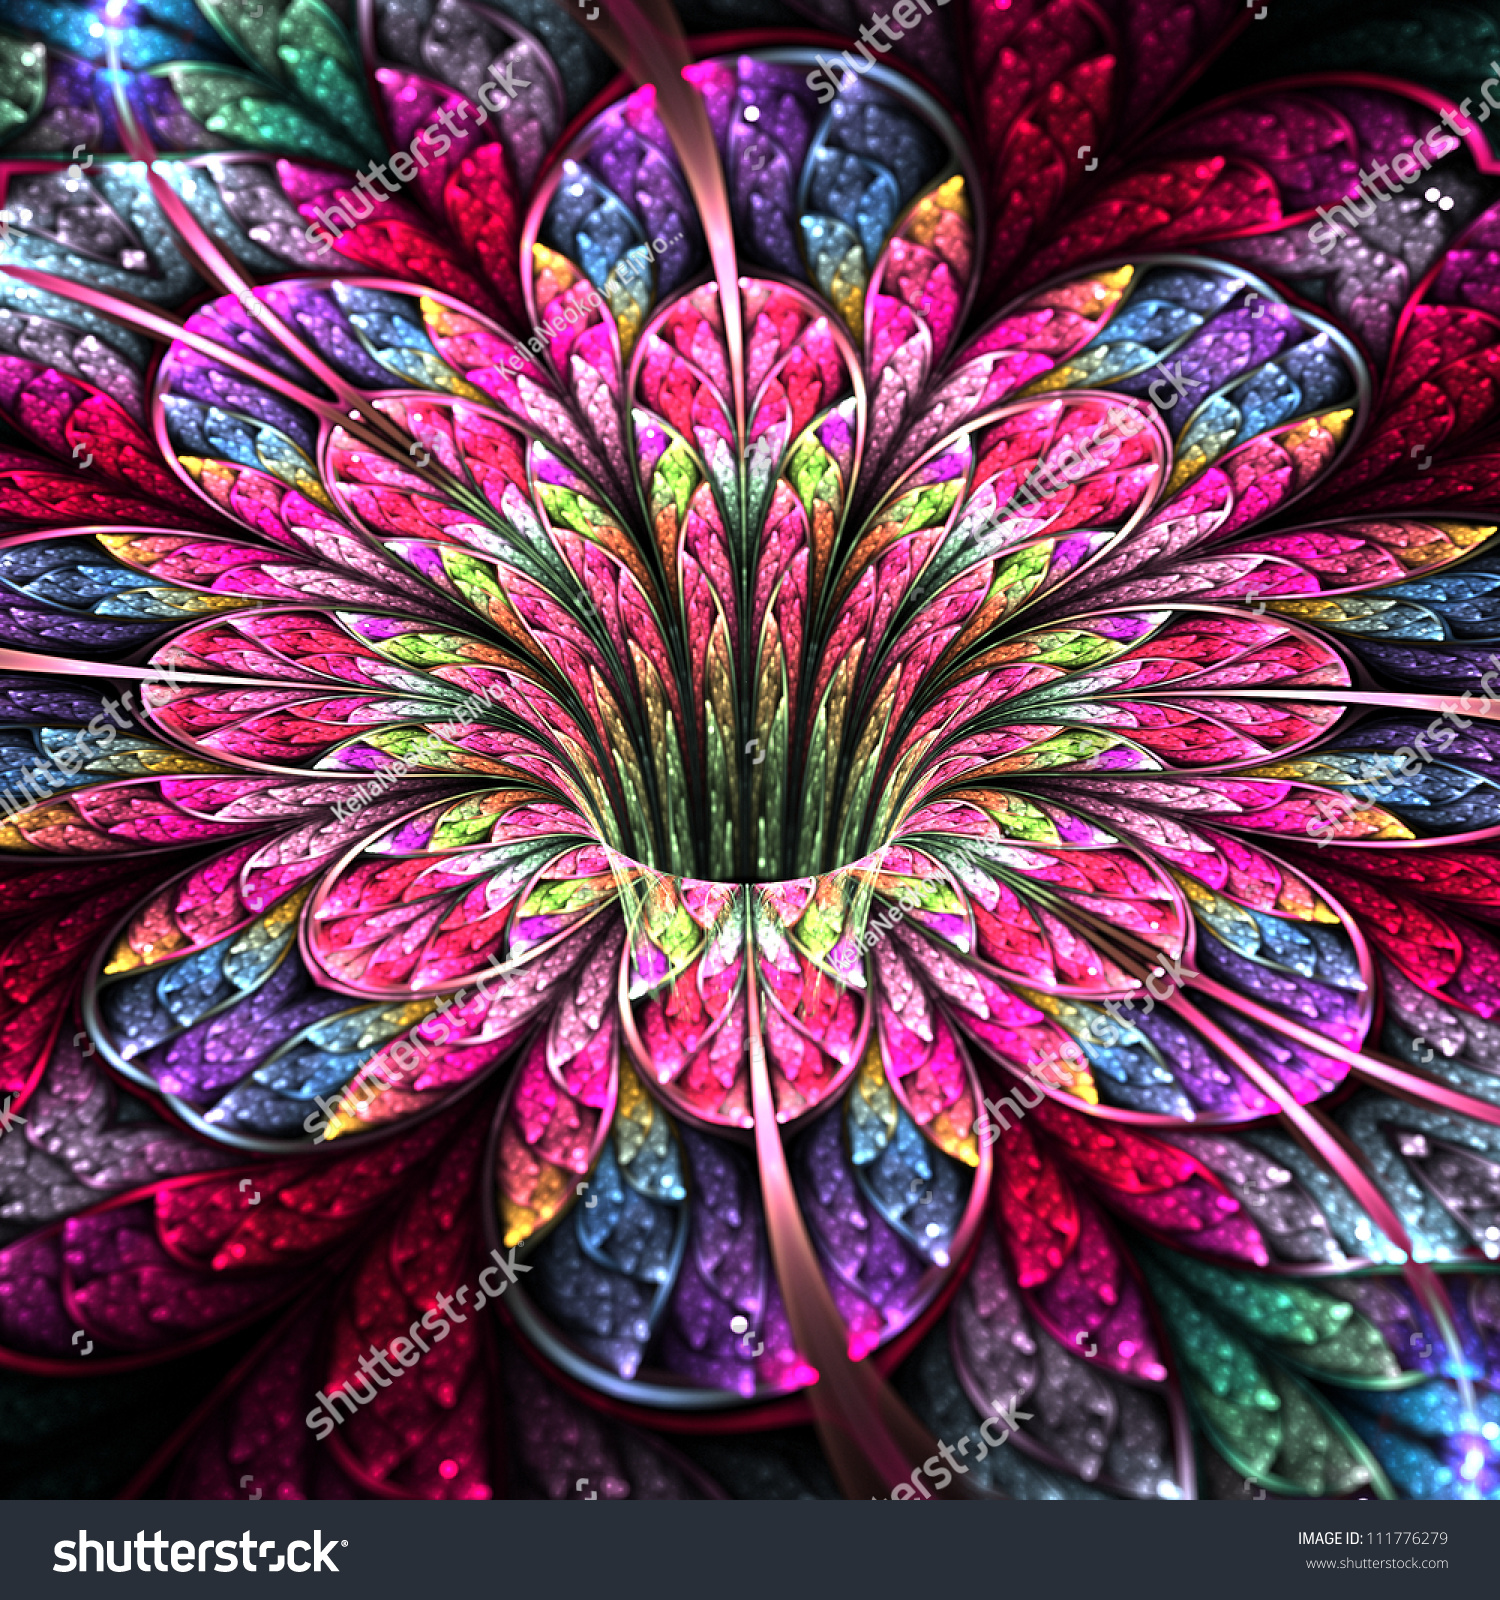 What Is Art And Design : Colorful bright flower modern fractal art stock photo